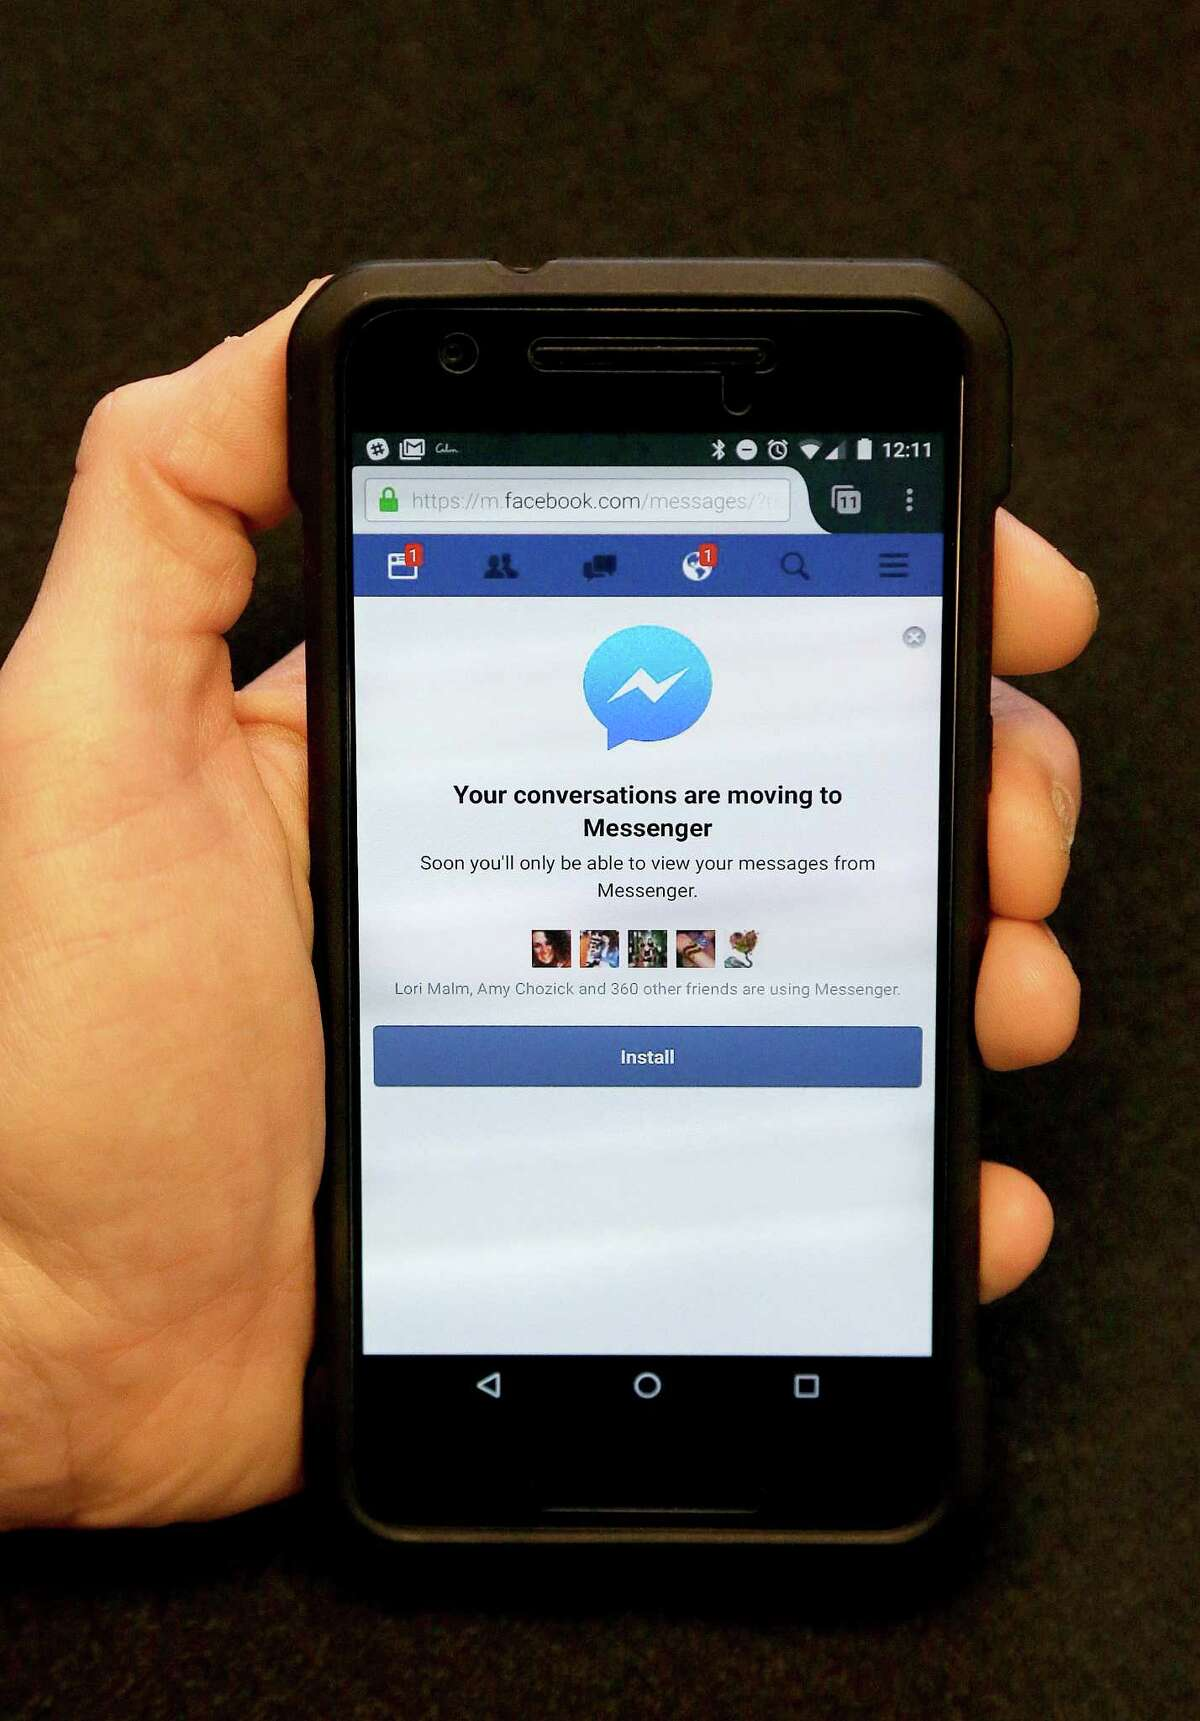 Facebook is pushing more people to install its Messenger application by blocking people who want to send and receive messages via its mobile website.